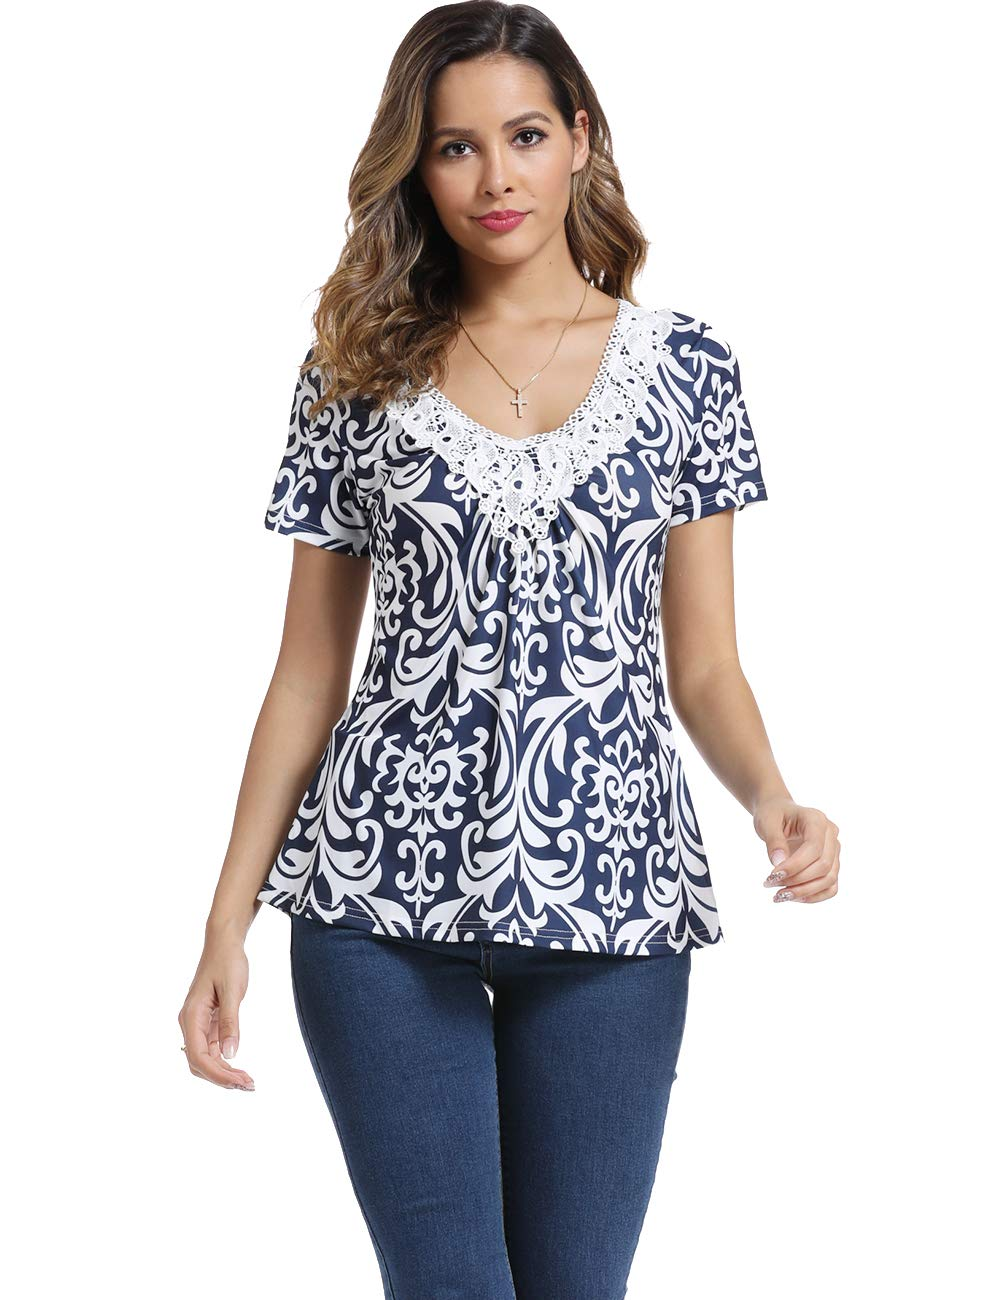 Women's Deep V-Neck Ruched Front Short Sleeve Ruffle Casual Tops Tunic Blouse Shirt (X-Small/US-2, Navy Blue) by MISS MOLY